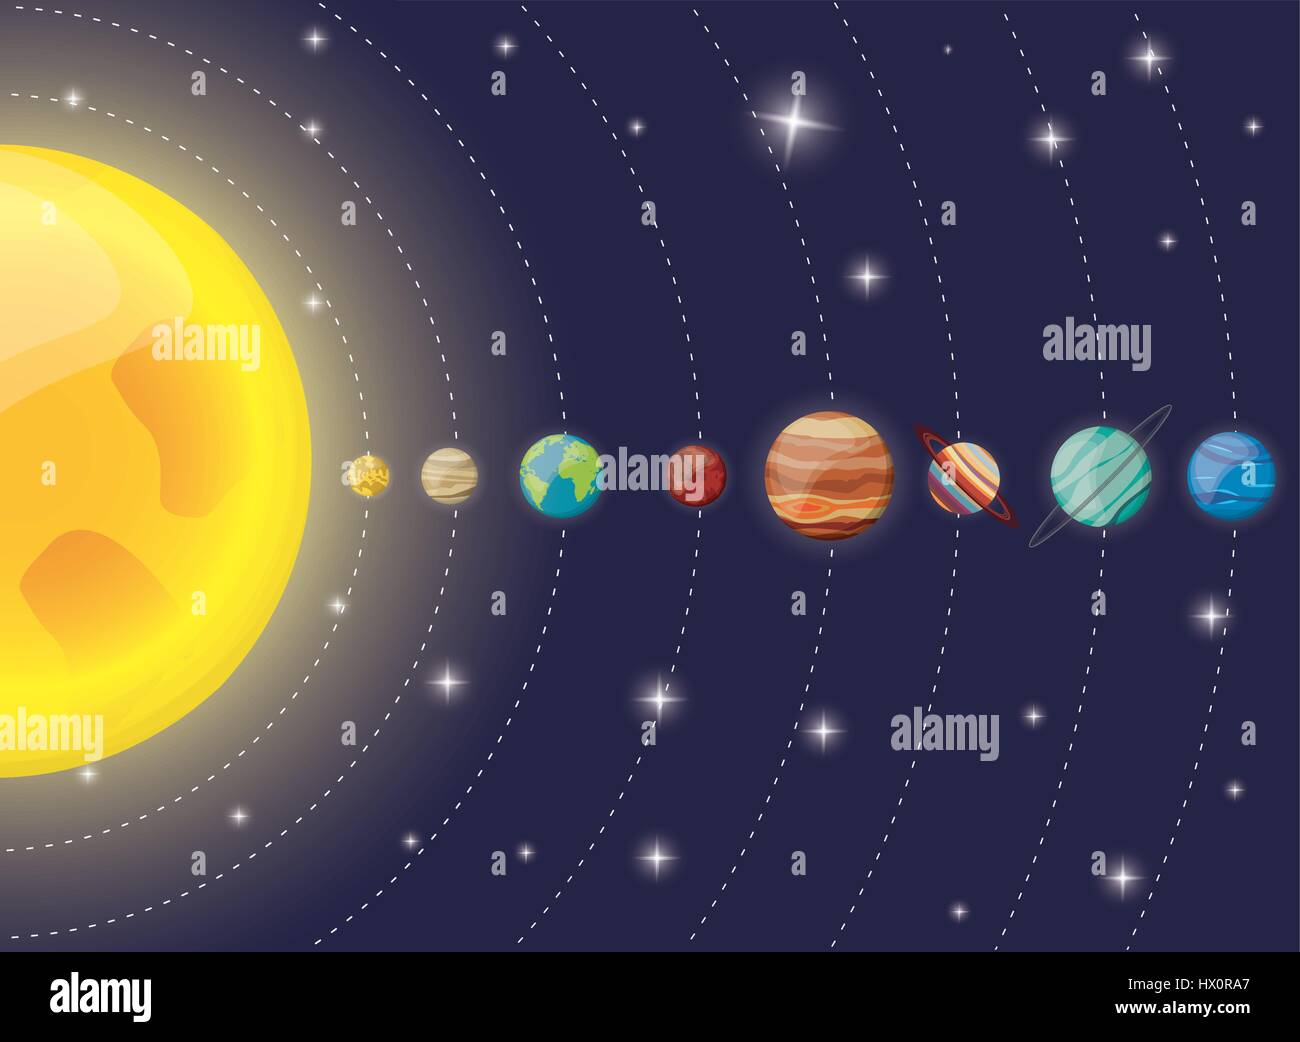 Diagram Of The Sun And The Planets.Solar System Planets Sun Diagram Stock Vector Art